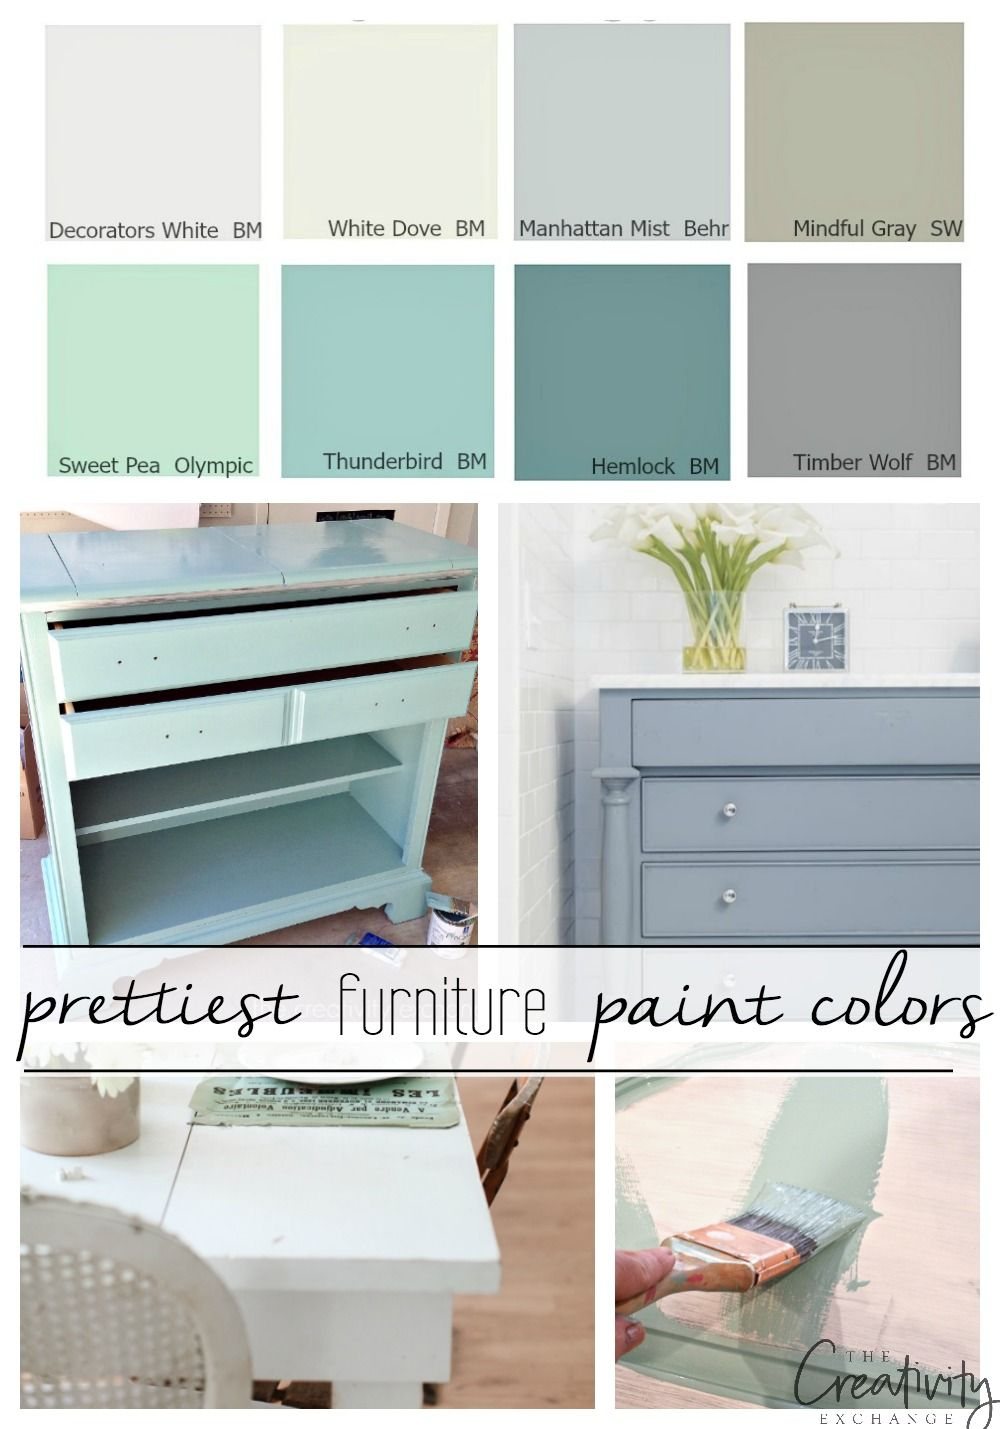 4 of the Best Paint Colors for Painting Furniture  Pretty